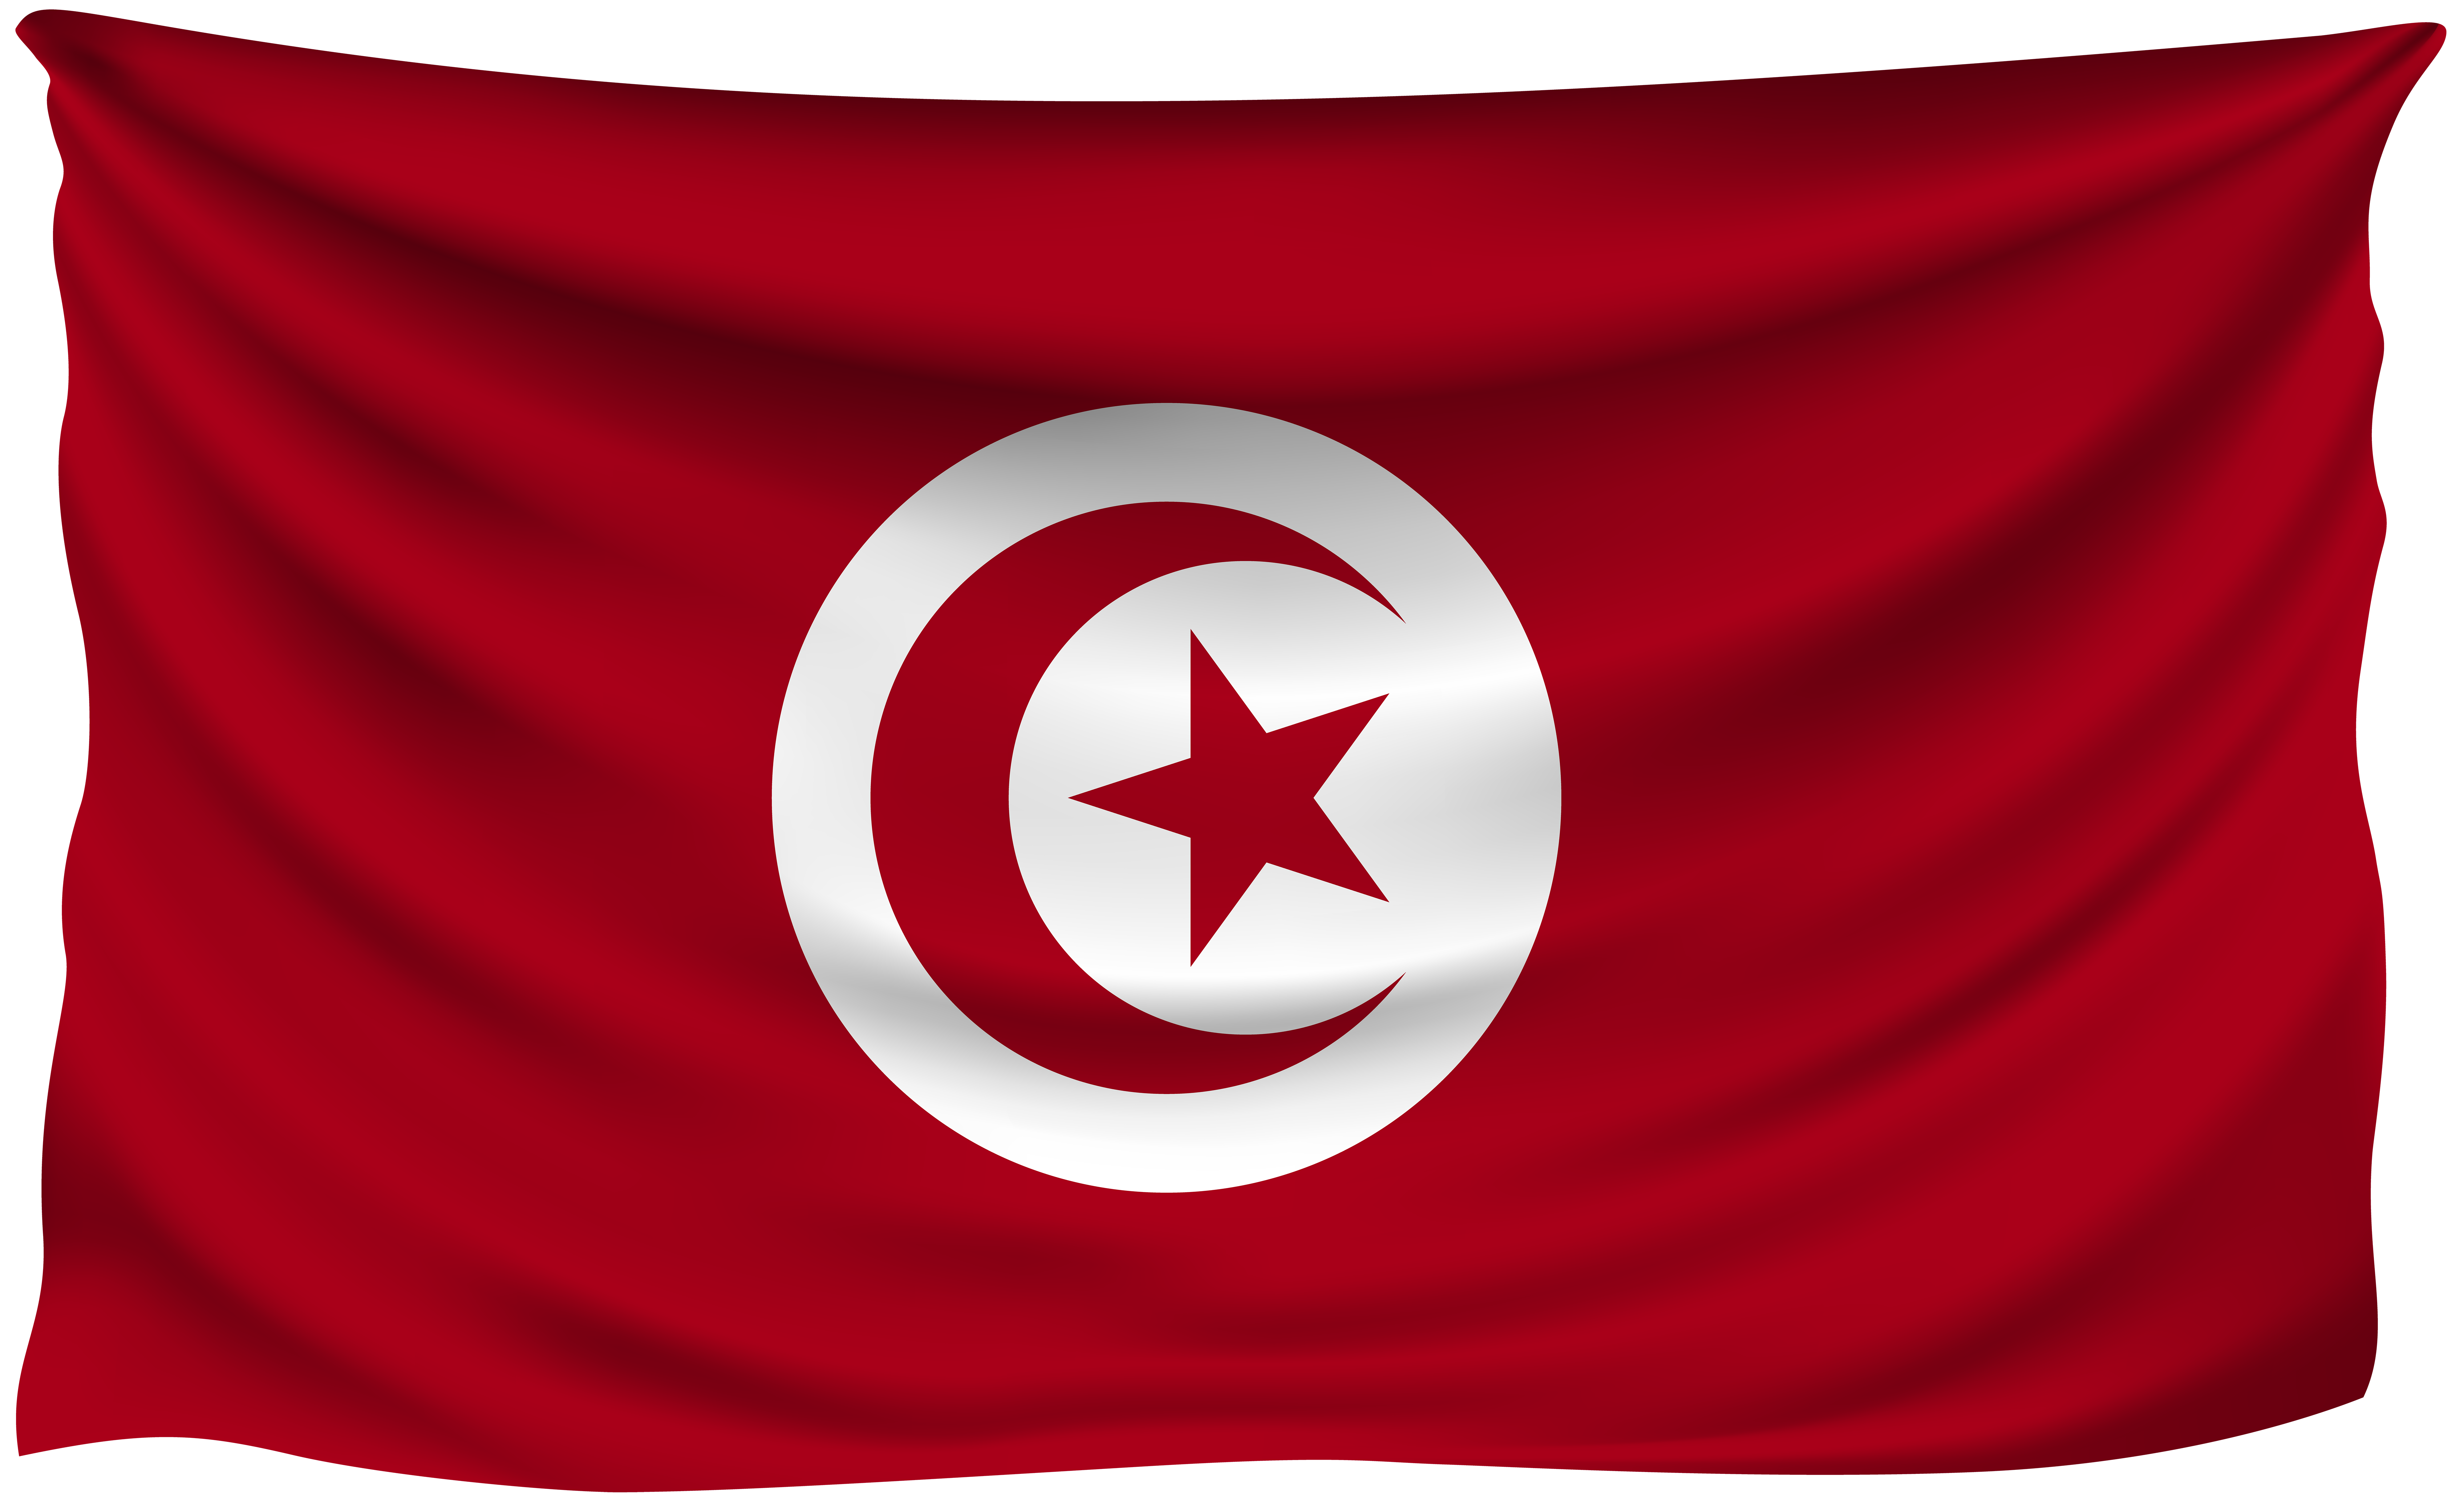 Tunisia flag png. Wrinkled gallery yopriceville high